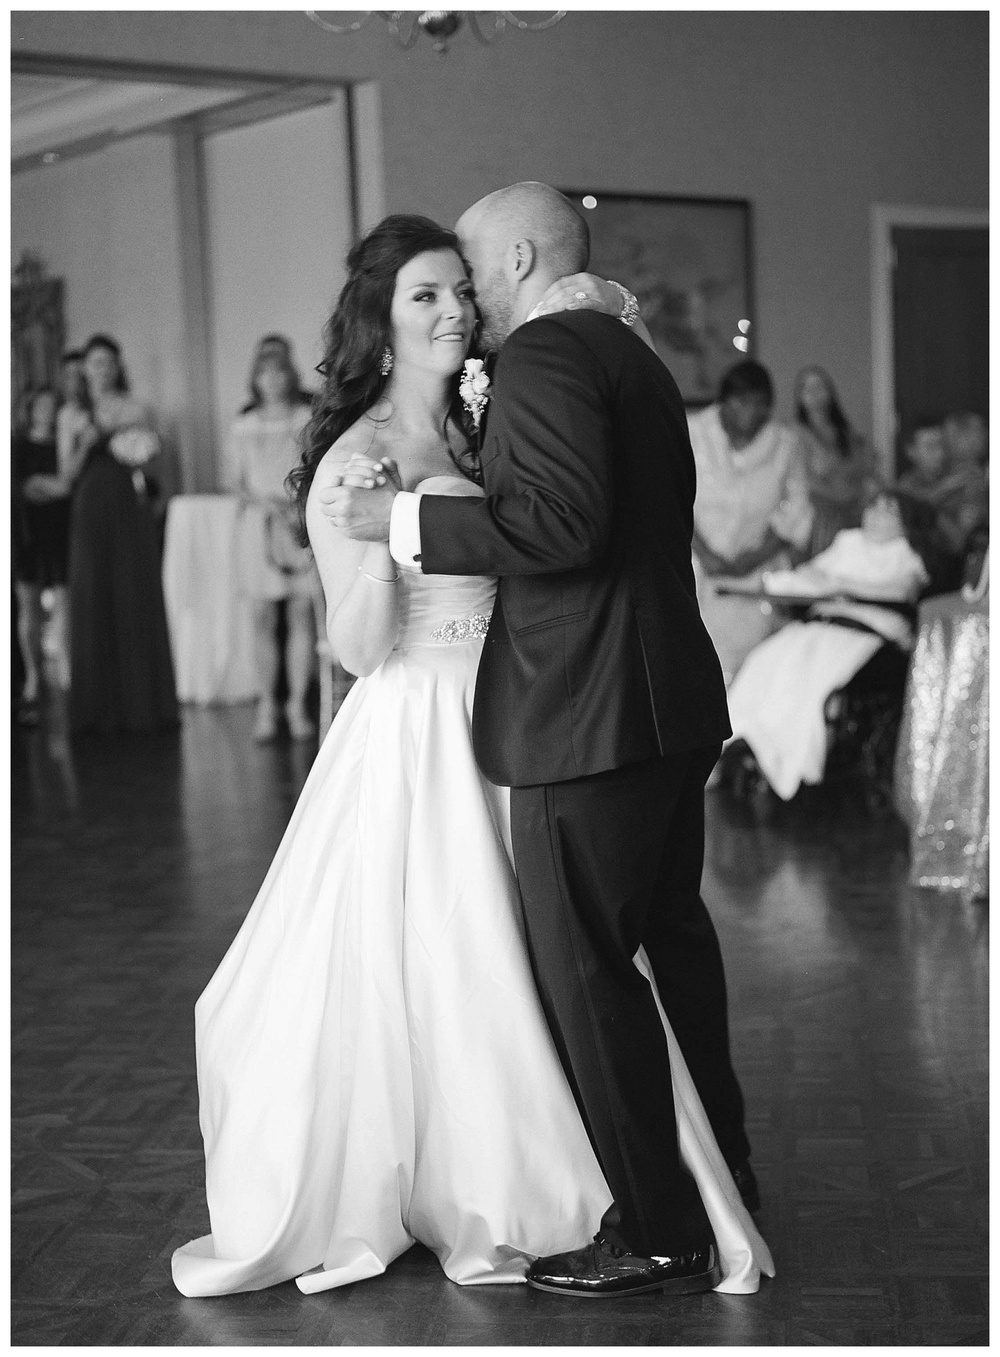 Destination wedding - film wedding photography - first dance at Country Club of South Carolina wedding